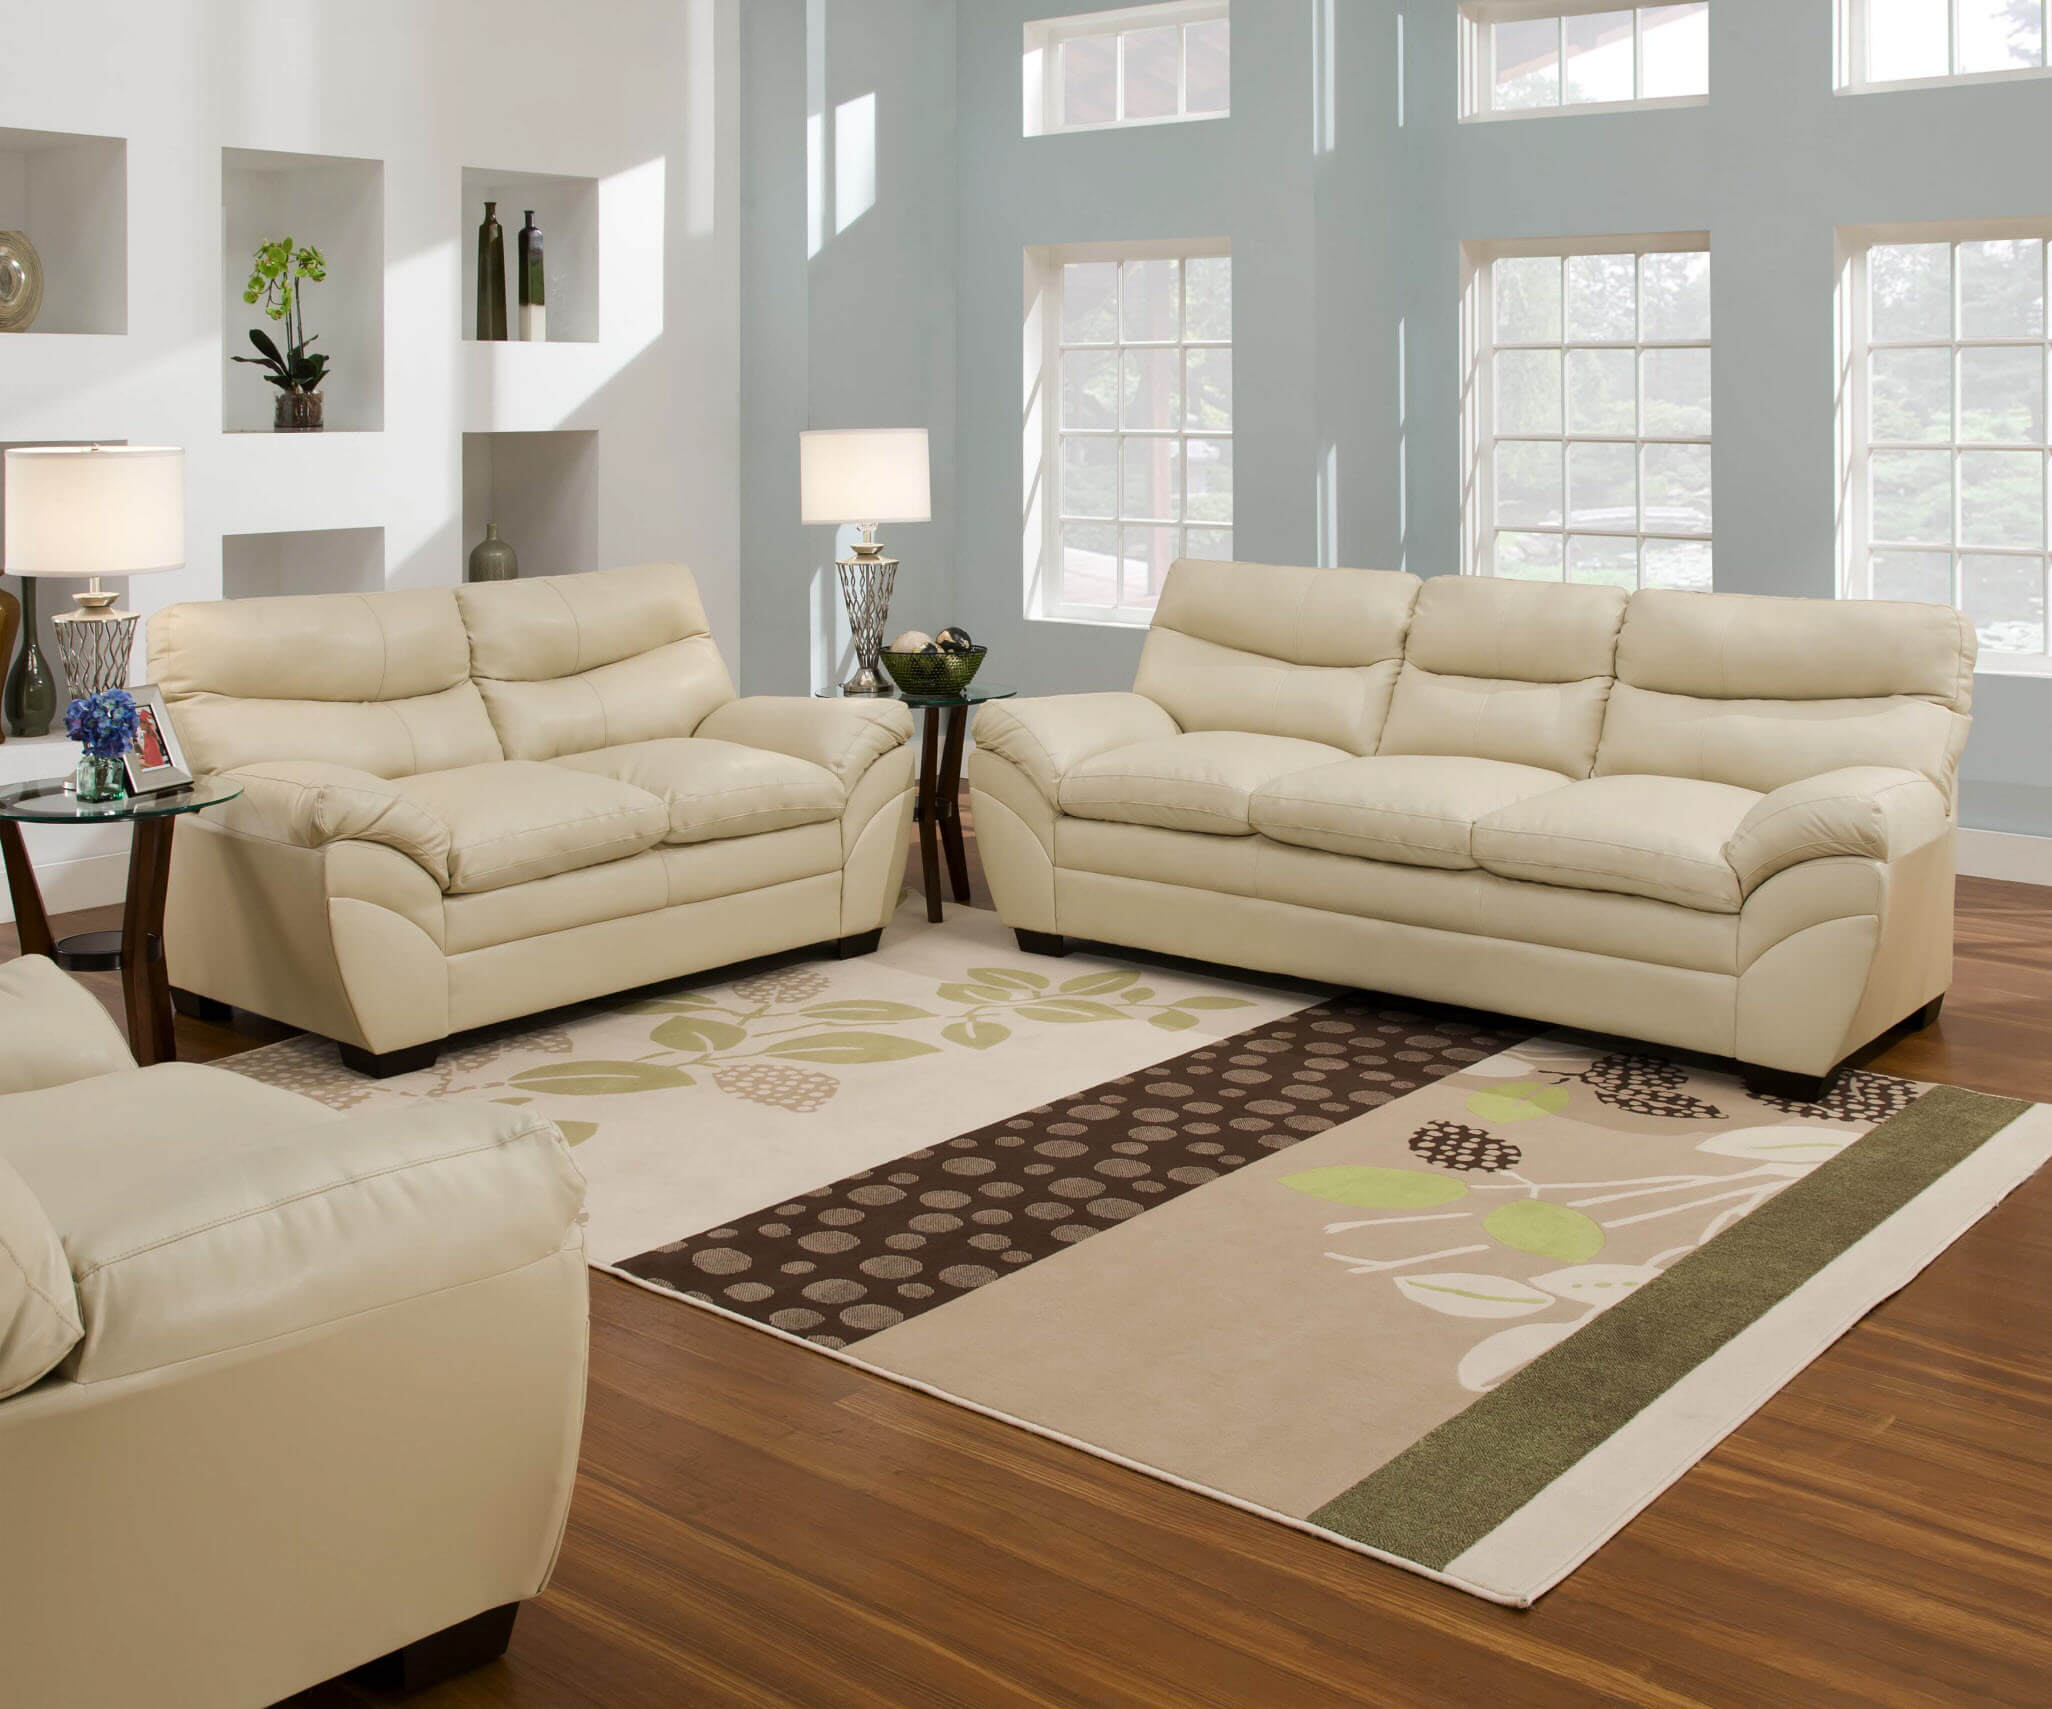 Soho Natural Sofa and Loveseat